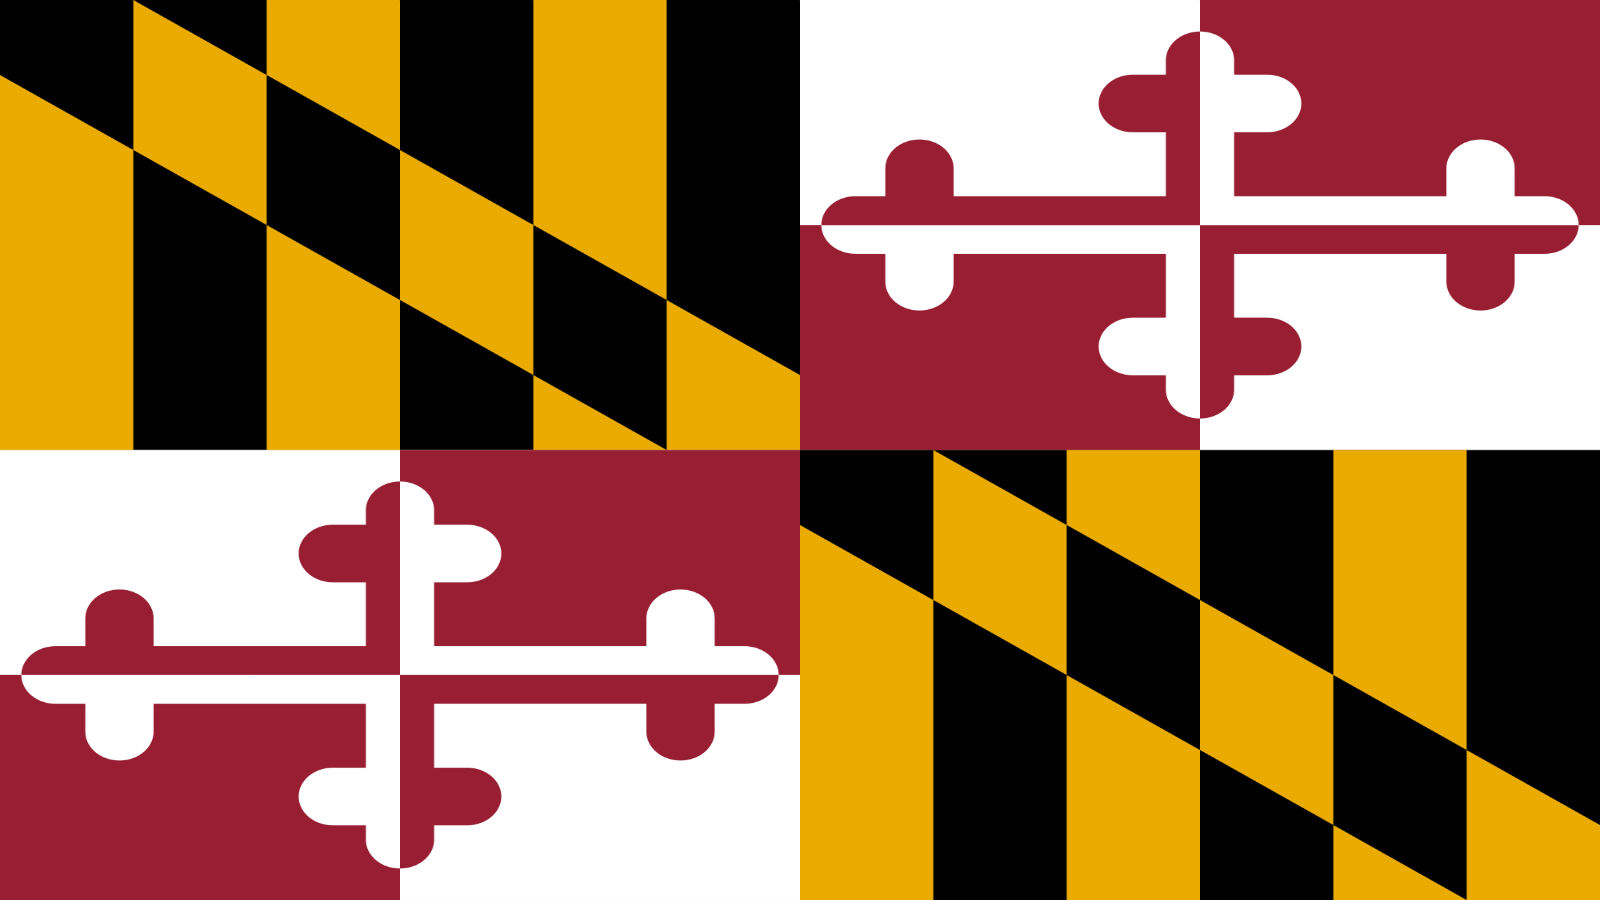 Maryland birth certificate legislation removes roadblocks for maryland birth certificate legislation removes roadblocks for transgender people 1betcityfo Image collections